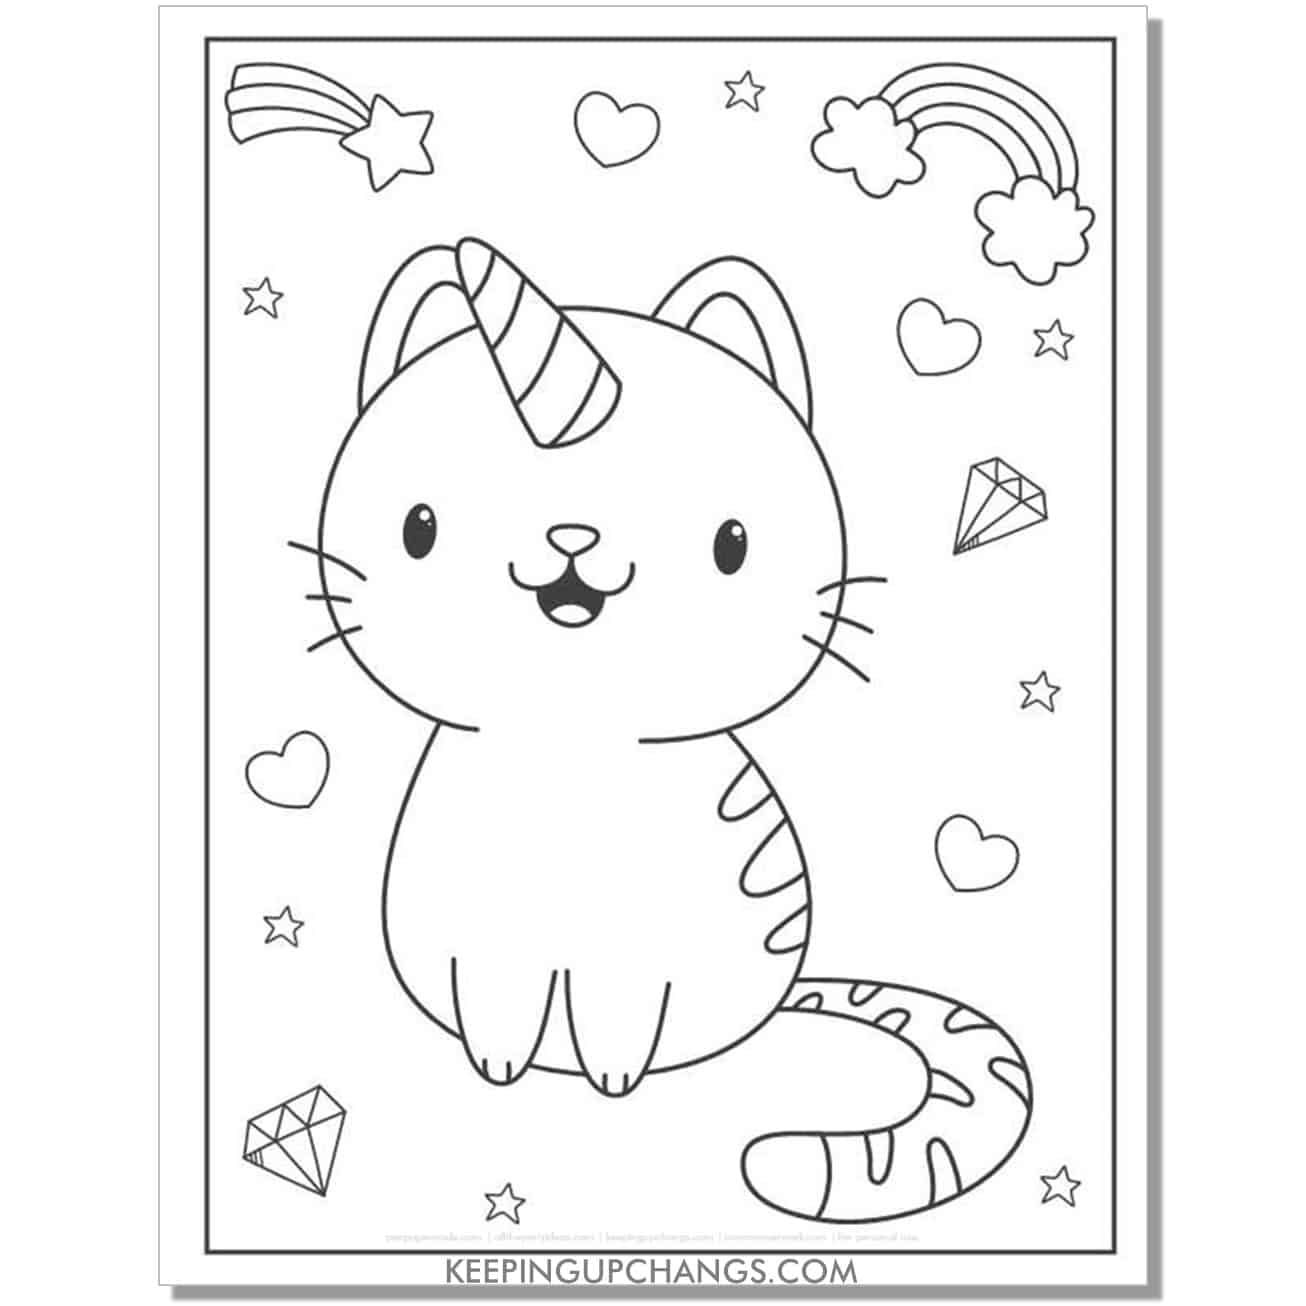 cat unicorn with hearts, rainbows, shooting stars coloring page.